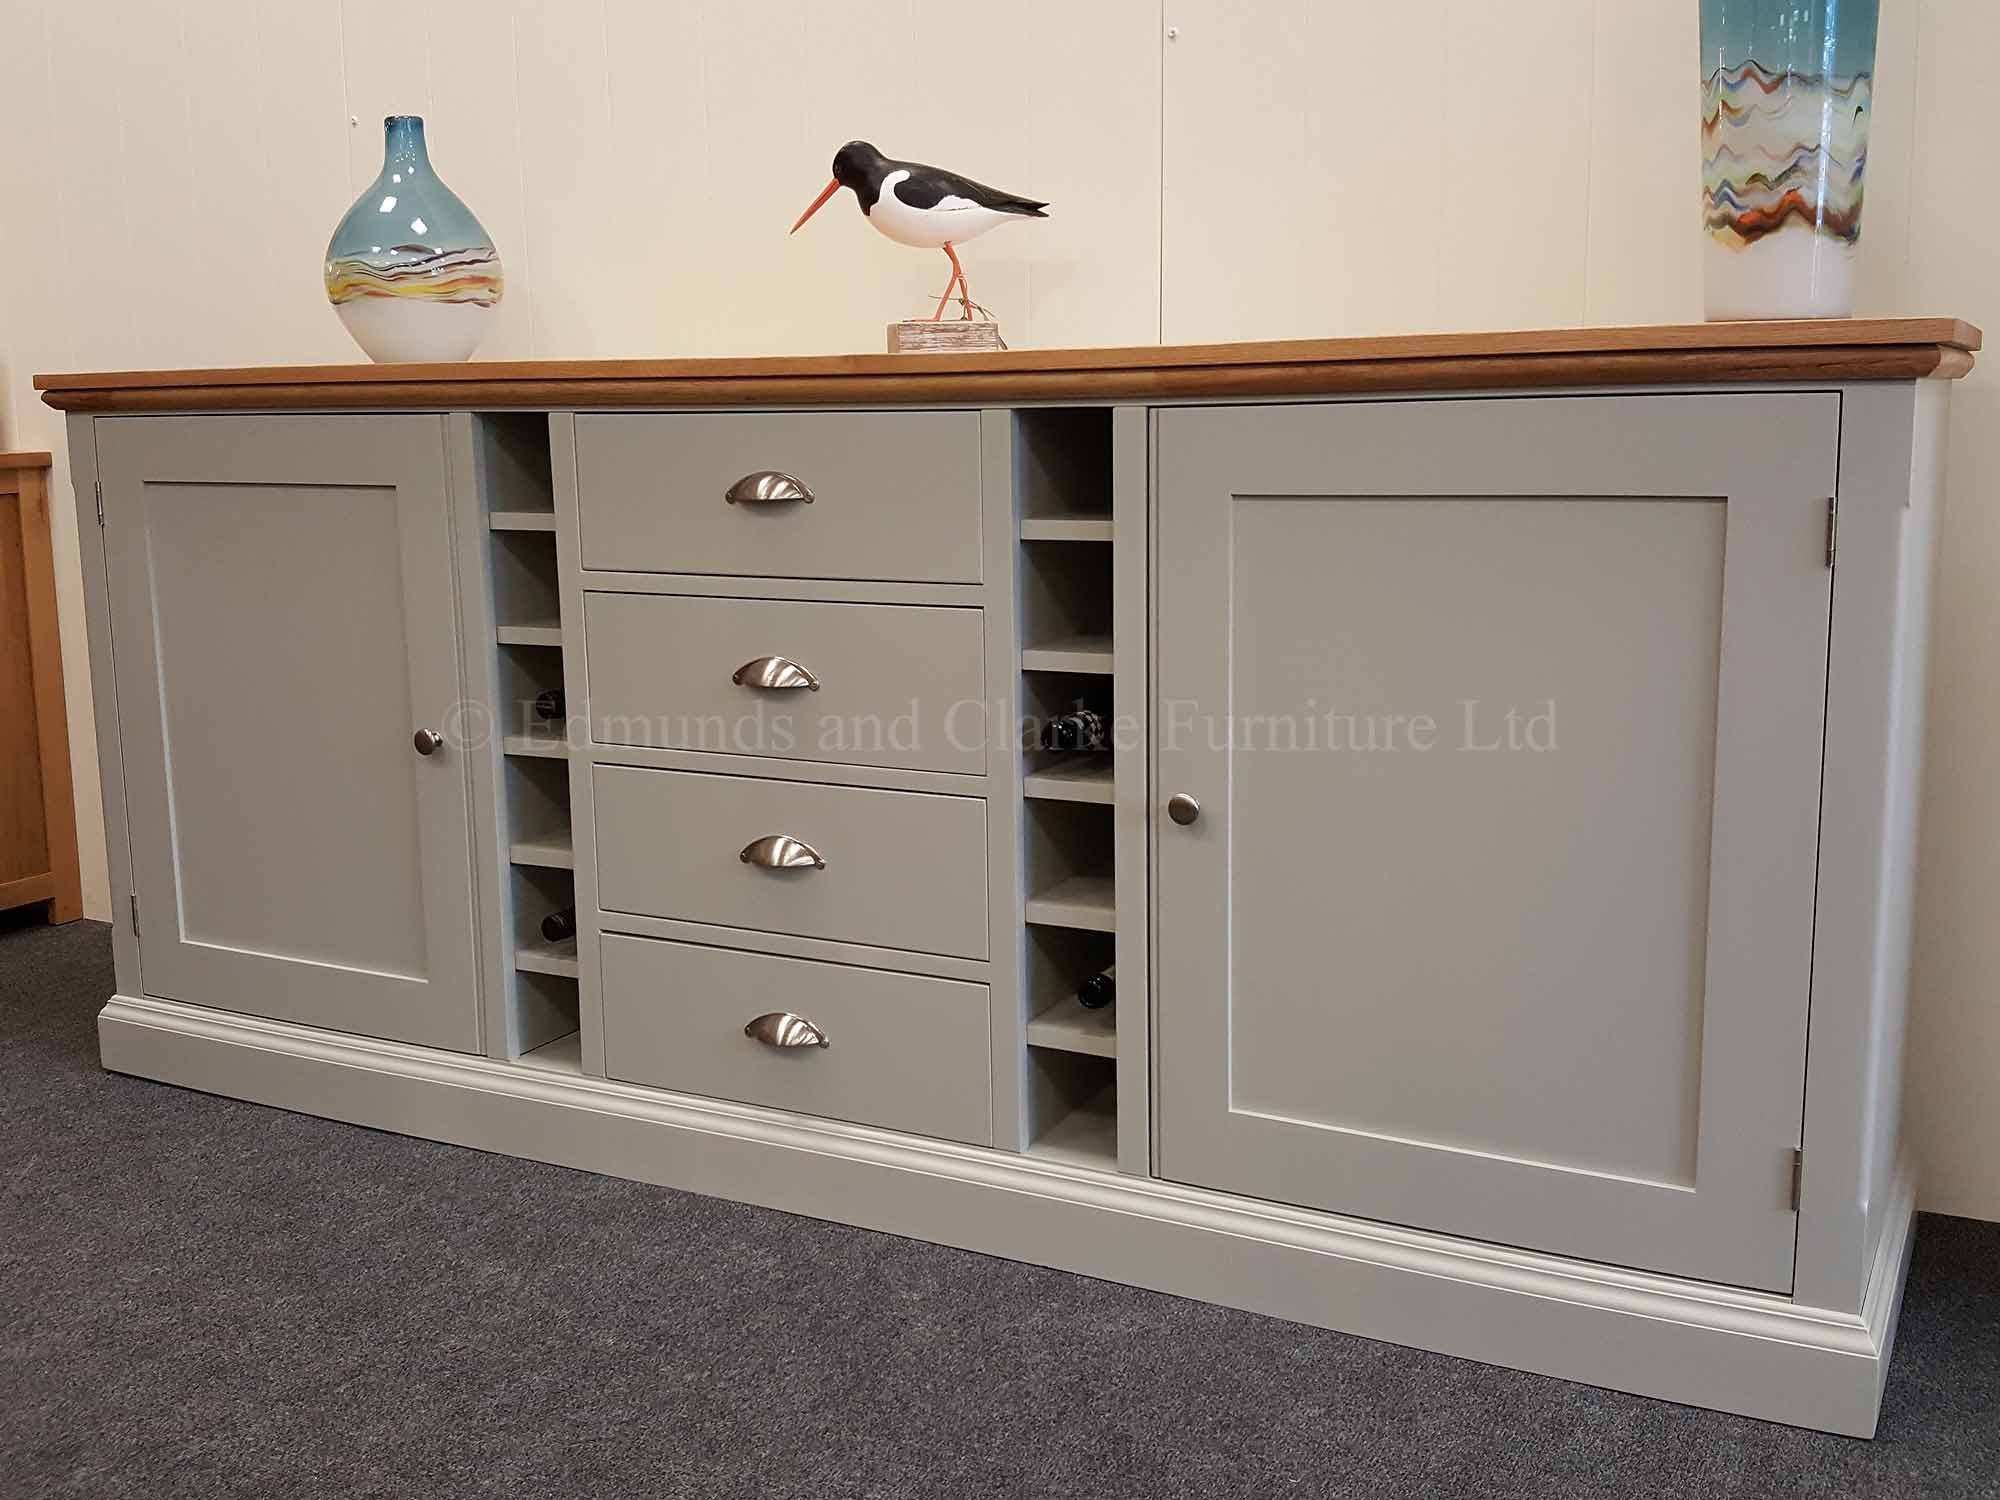 edmunds painted 7' multi sideboard 2 large doors 12 wine bottle holder and four central drawers